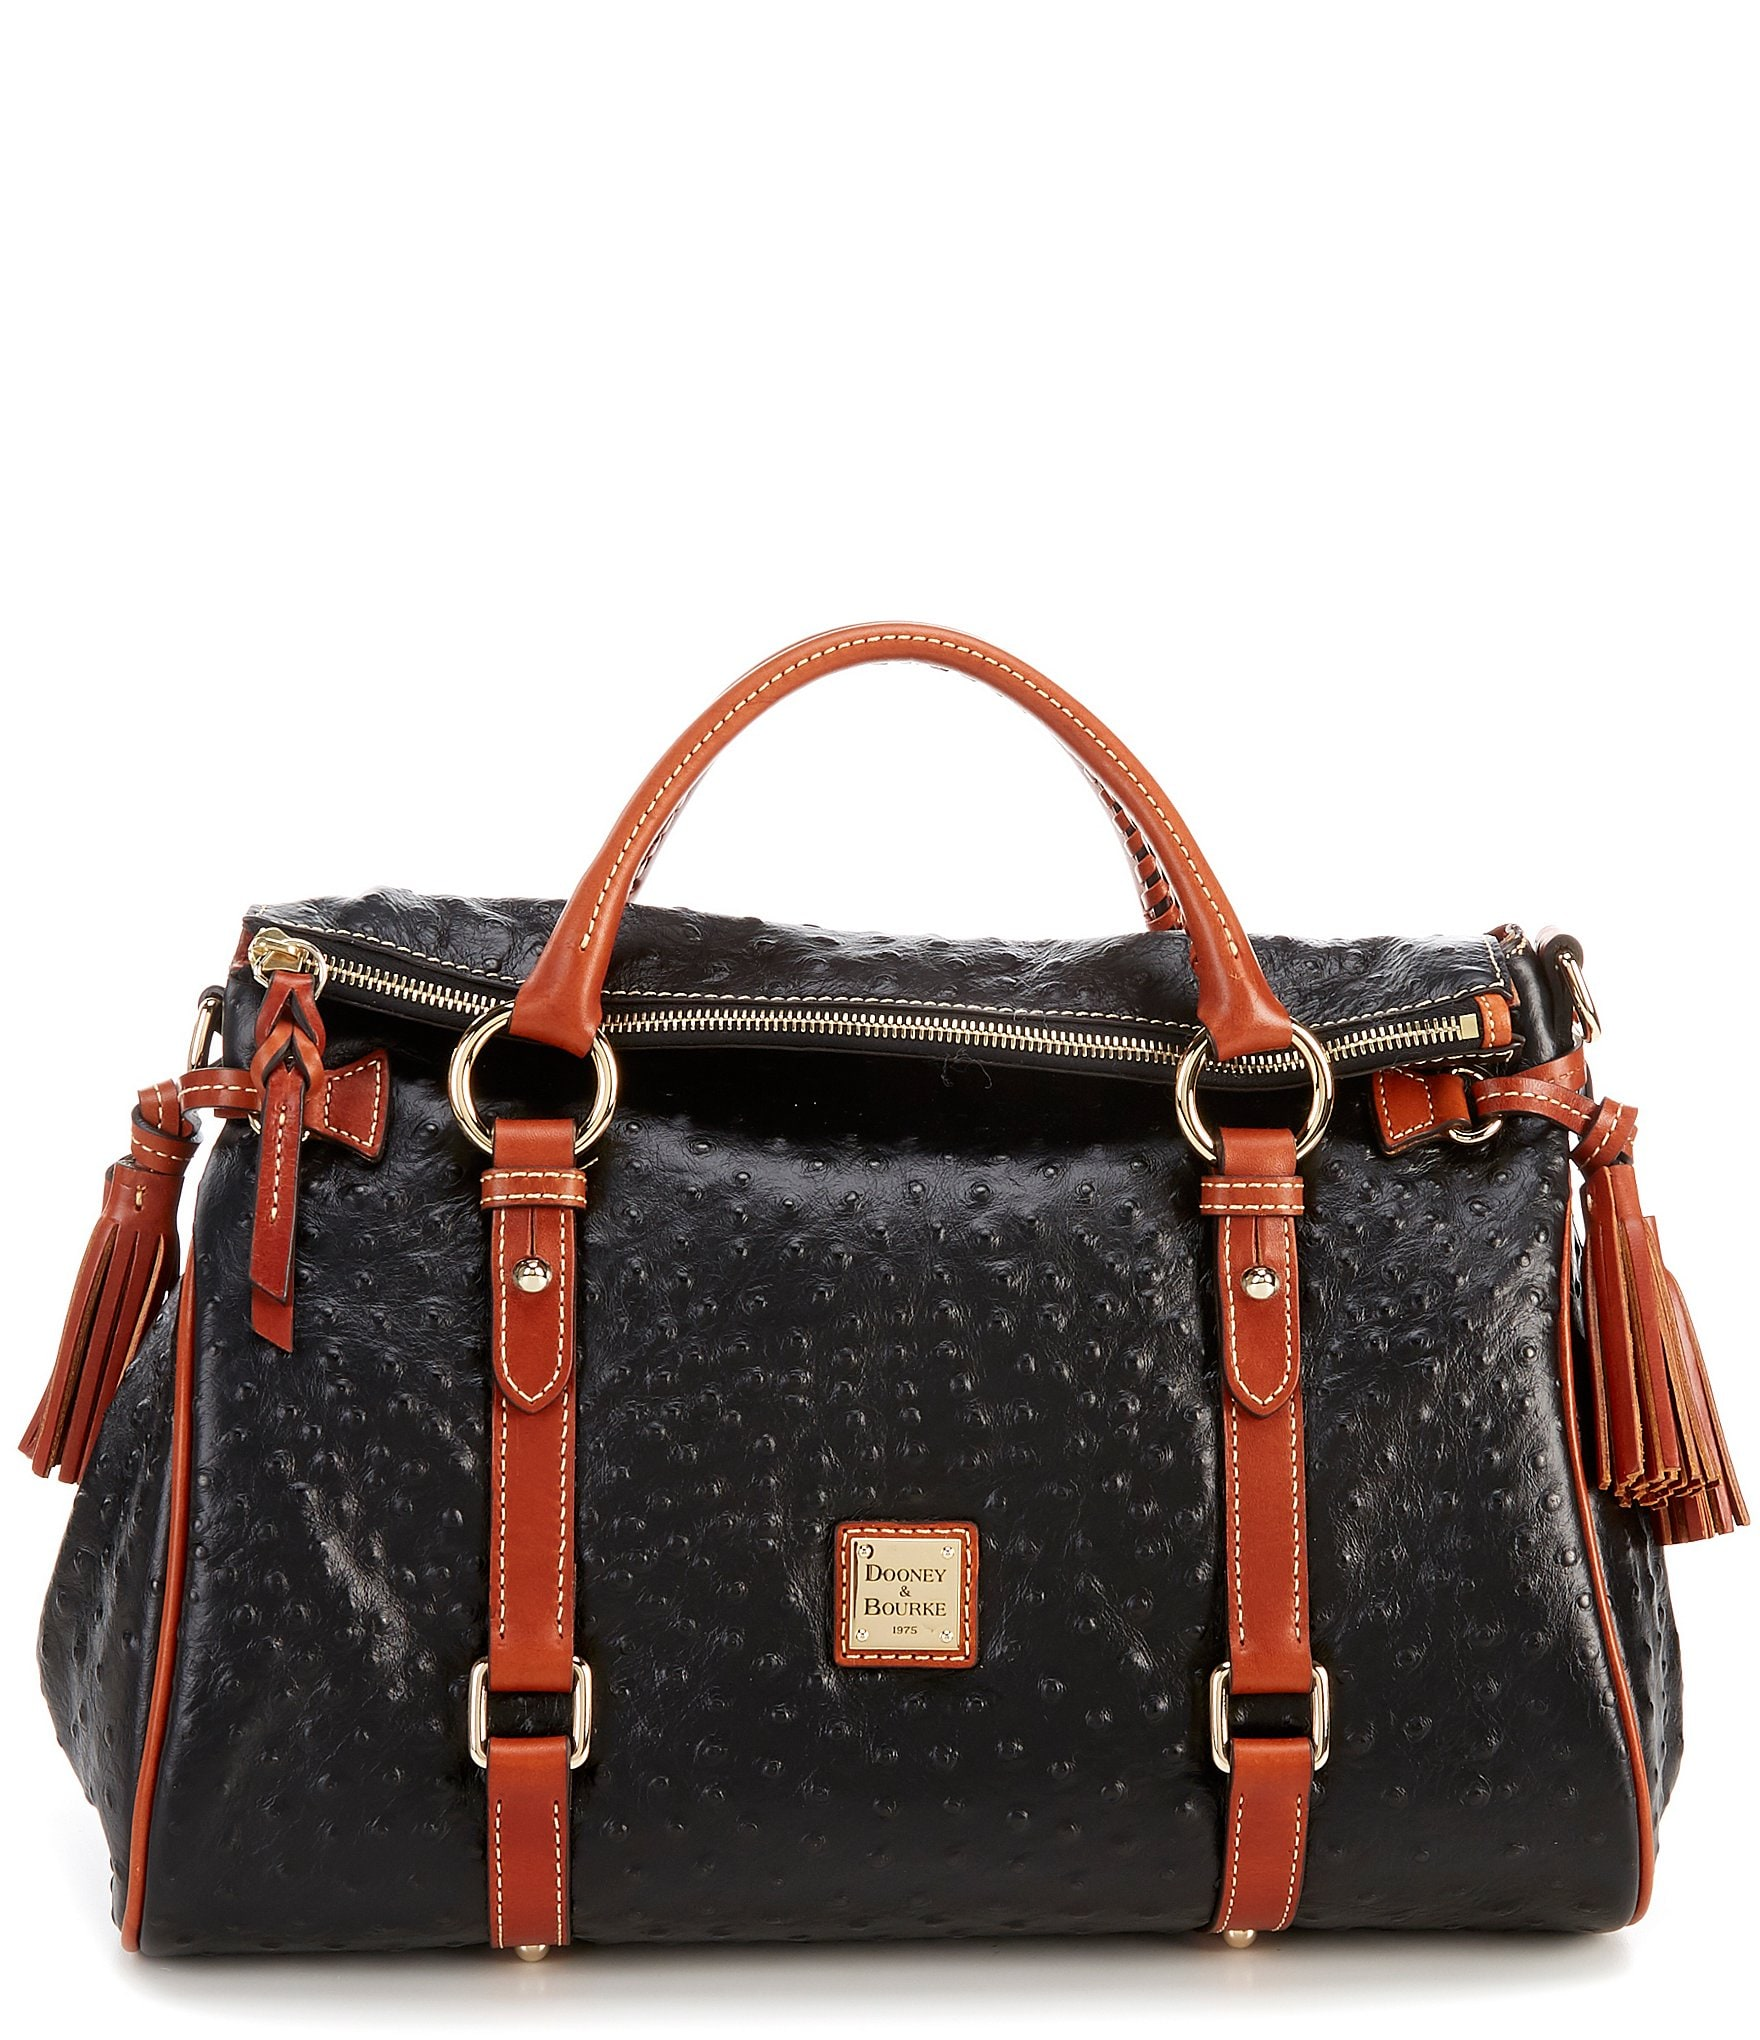 aad5fe2ae Dooney and Bourke Handbags, Purses & Wallets | Dillard's